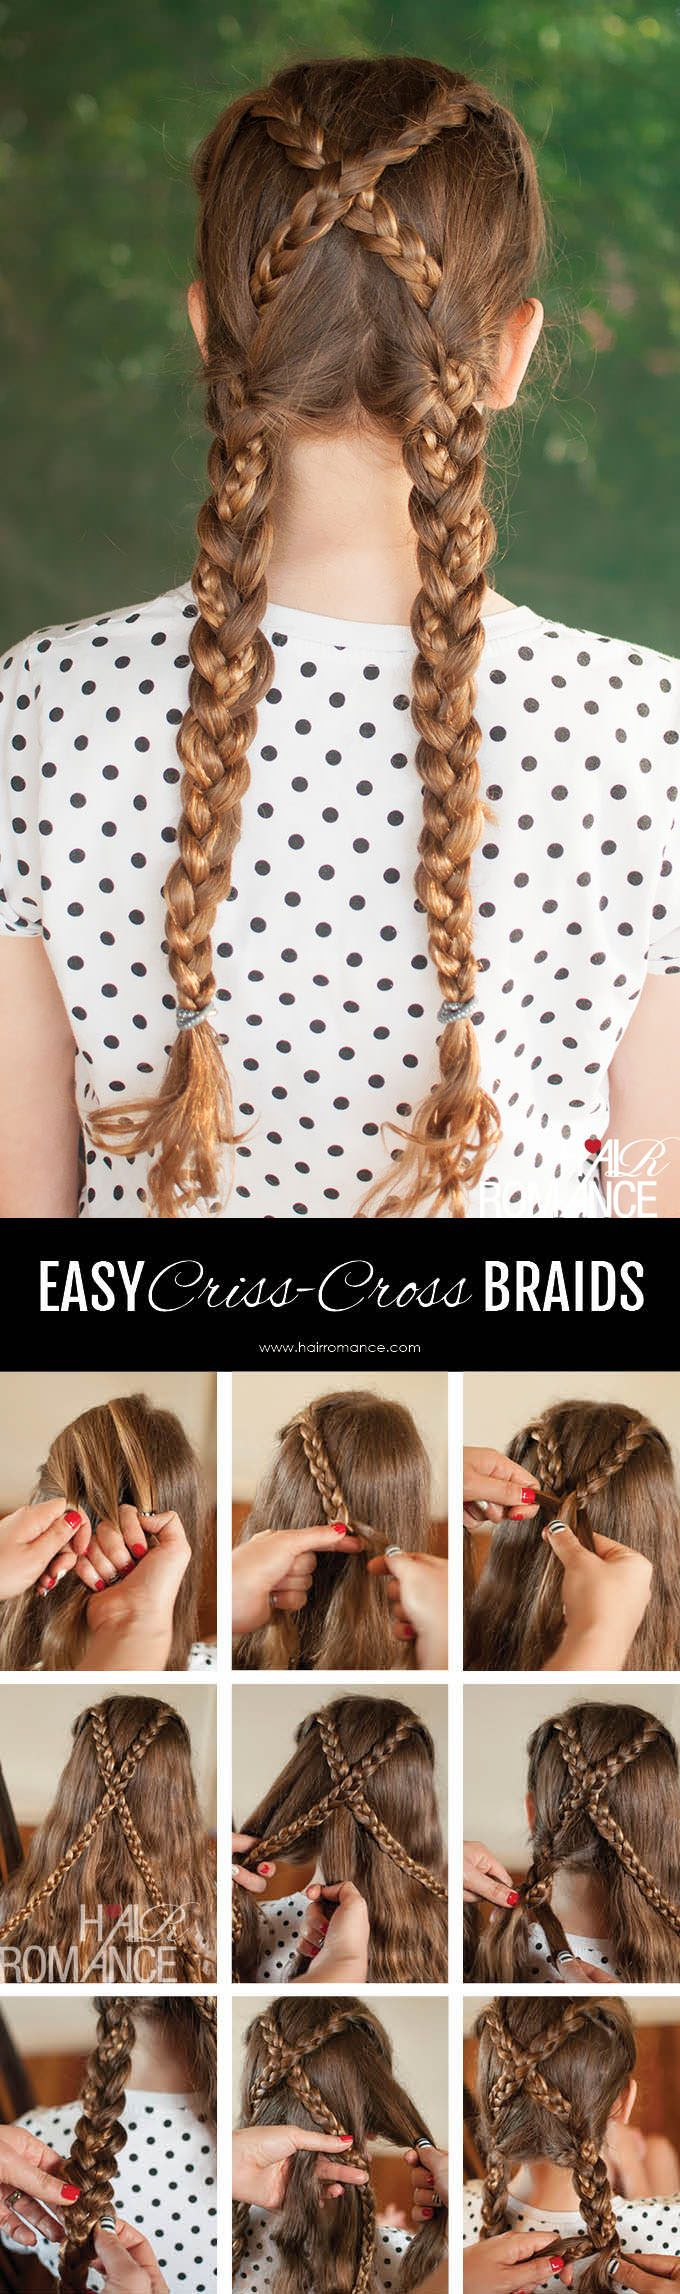 7 Different Style Braids Tutorials Plaits HairstylesGirl